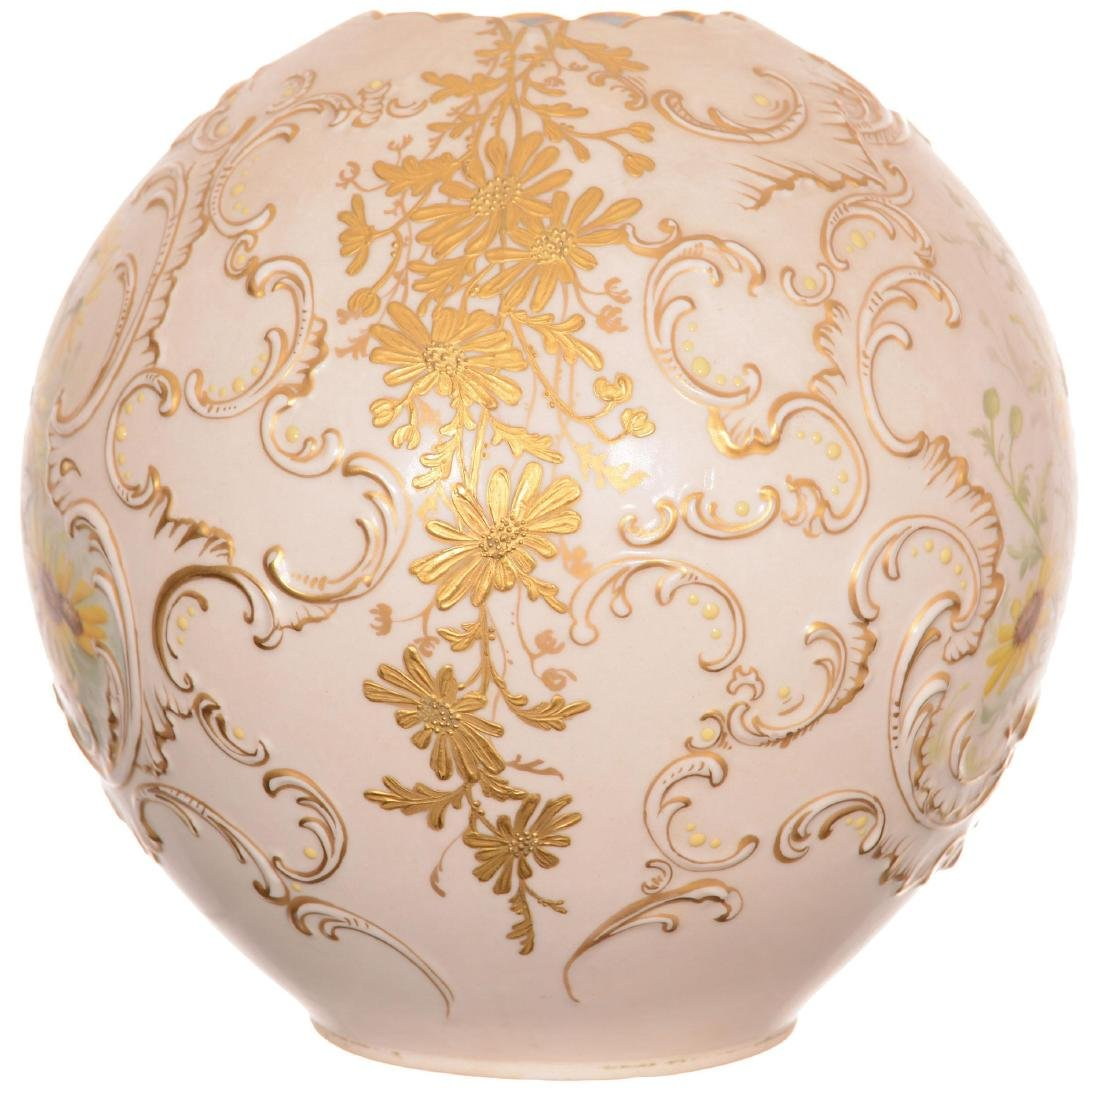 Extremely Rare Original Limoges Banquet Lamp - 5